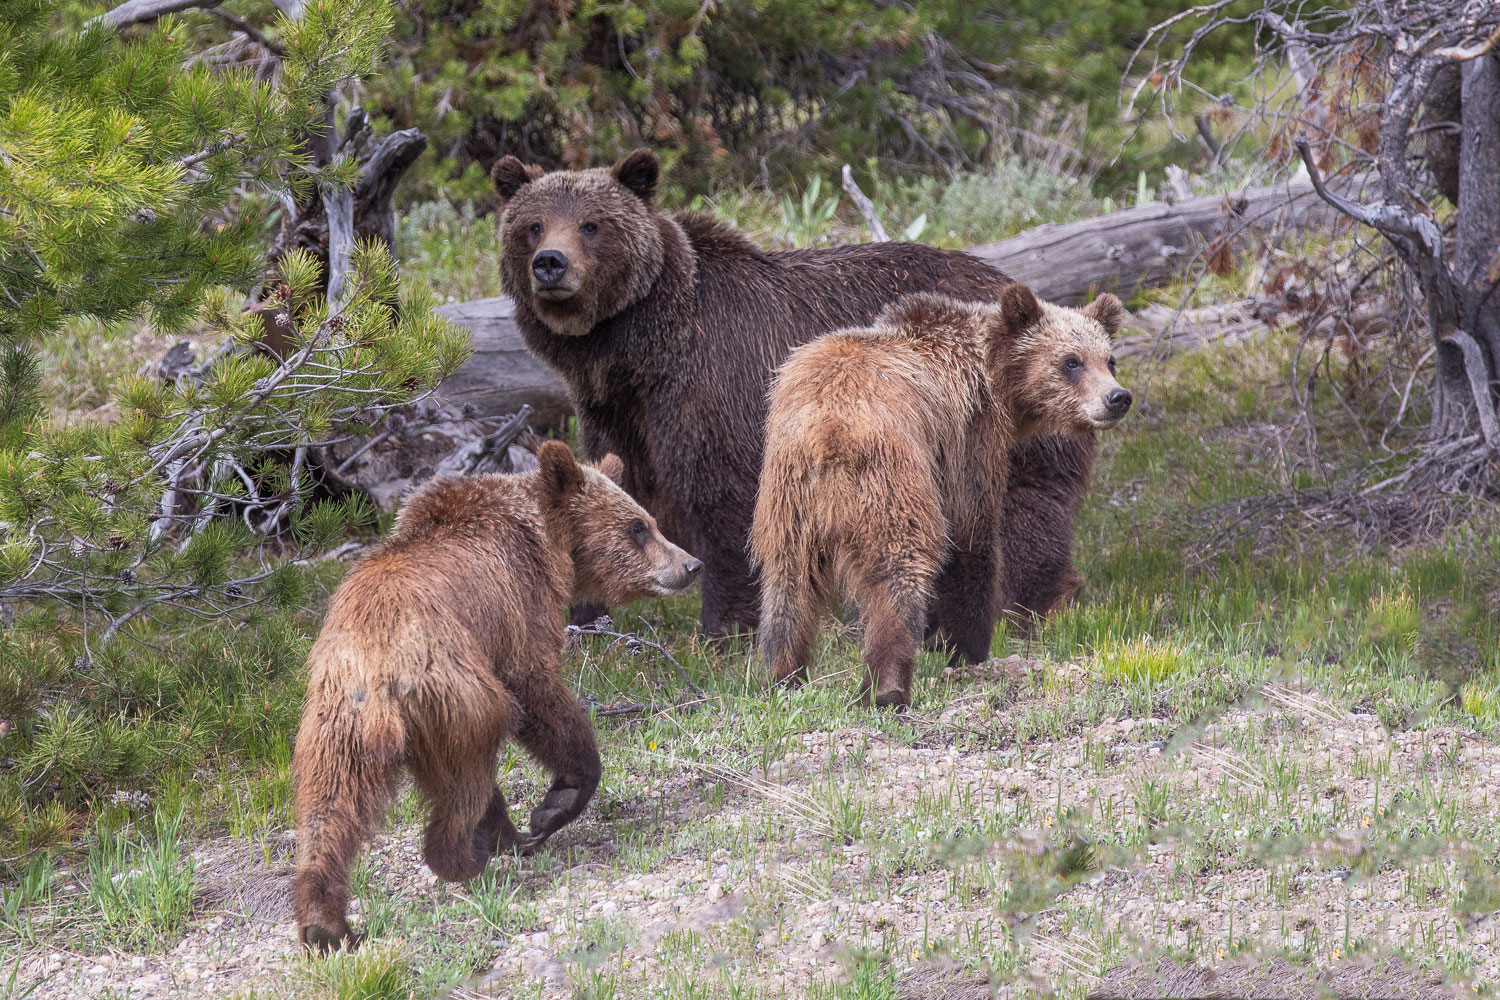 399, grizzly, bear, cub, , spring, grand teton, photo, image, , 2018, photo